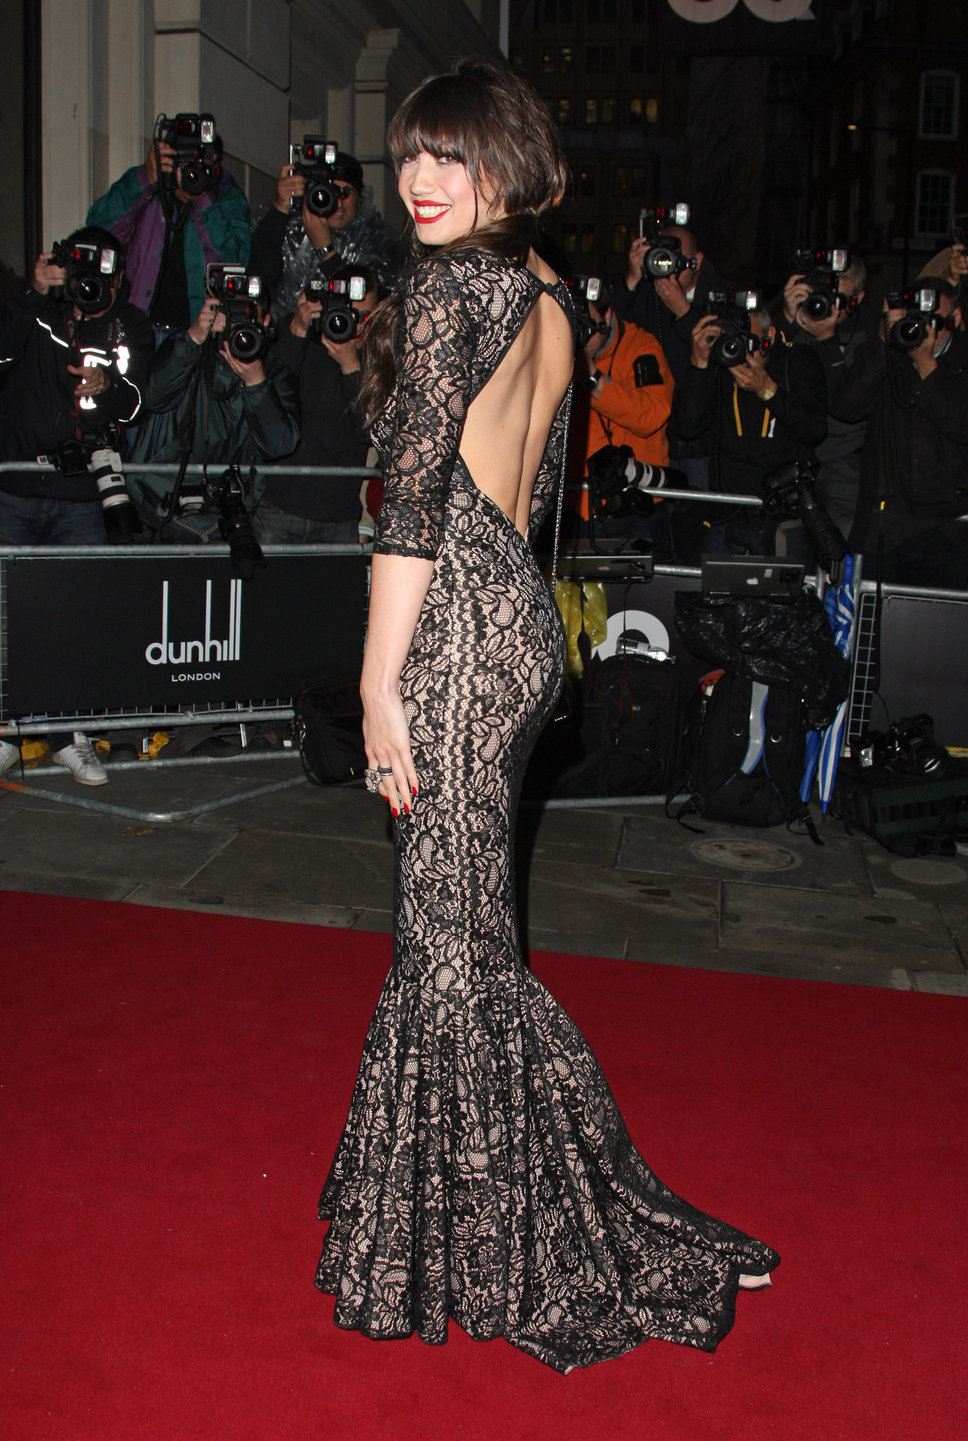 daisy_lowe_black_lace_dress_op.jpg